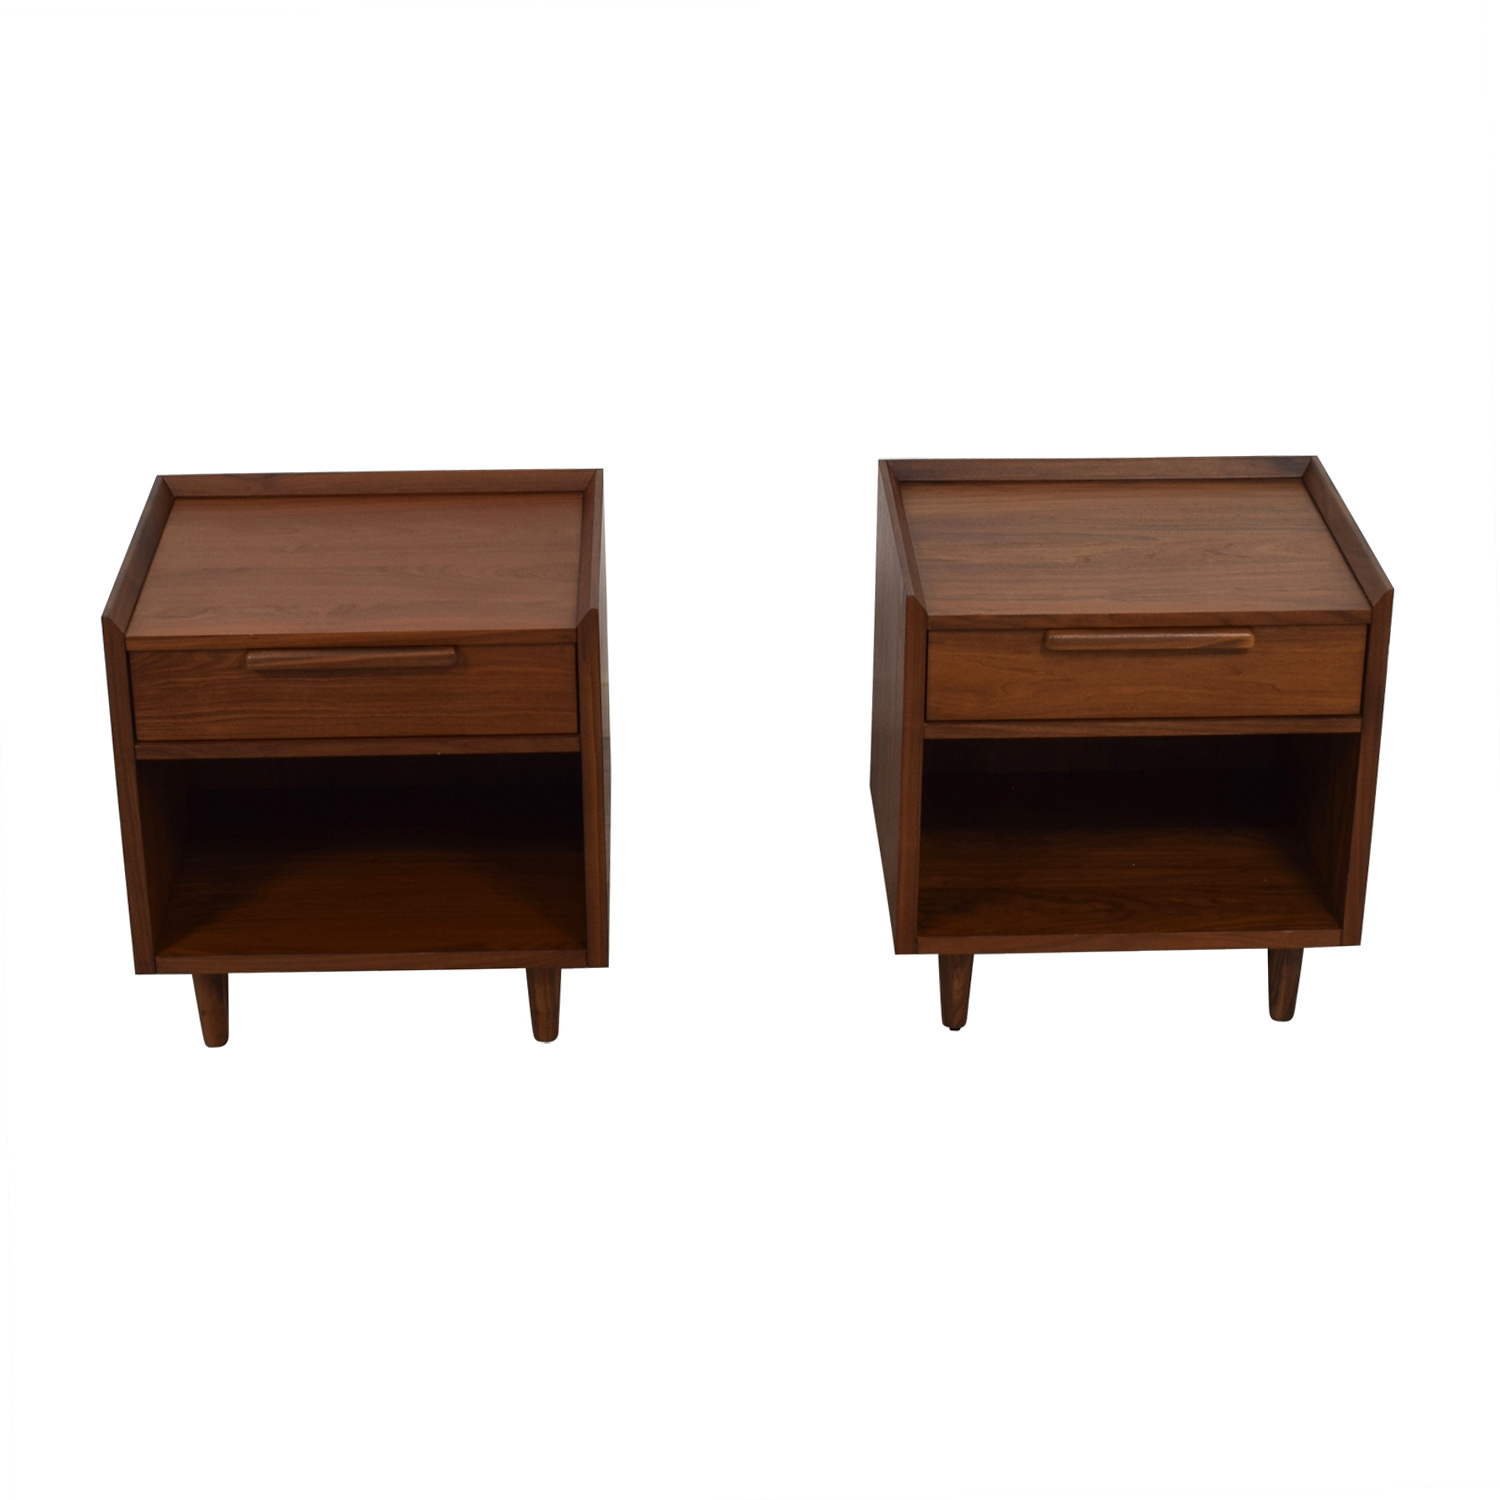 Crate & Barrel Crate & Barrel Single Drawer Nightstands coupon